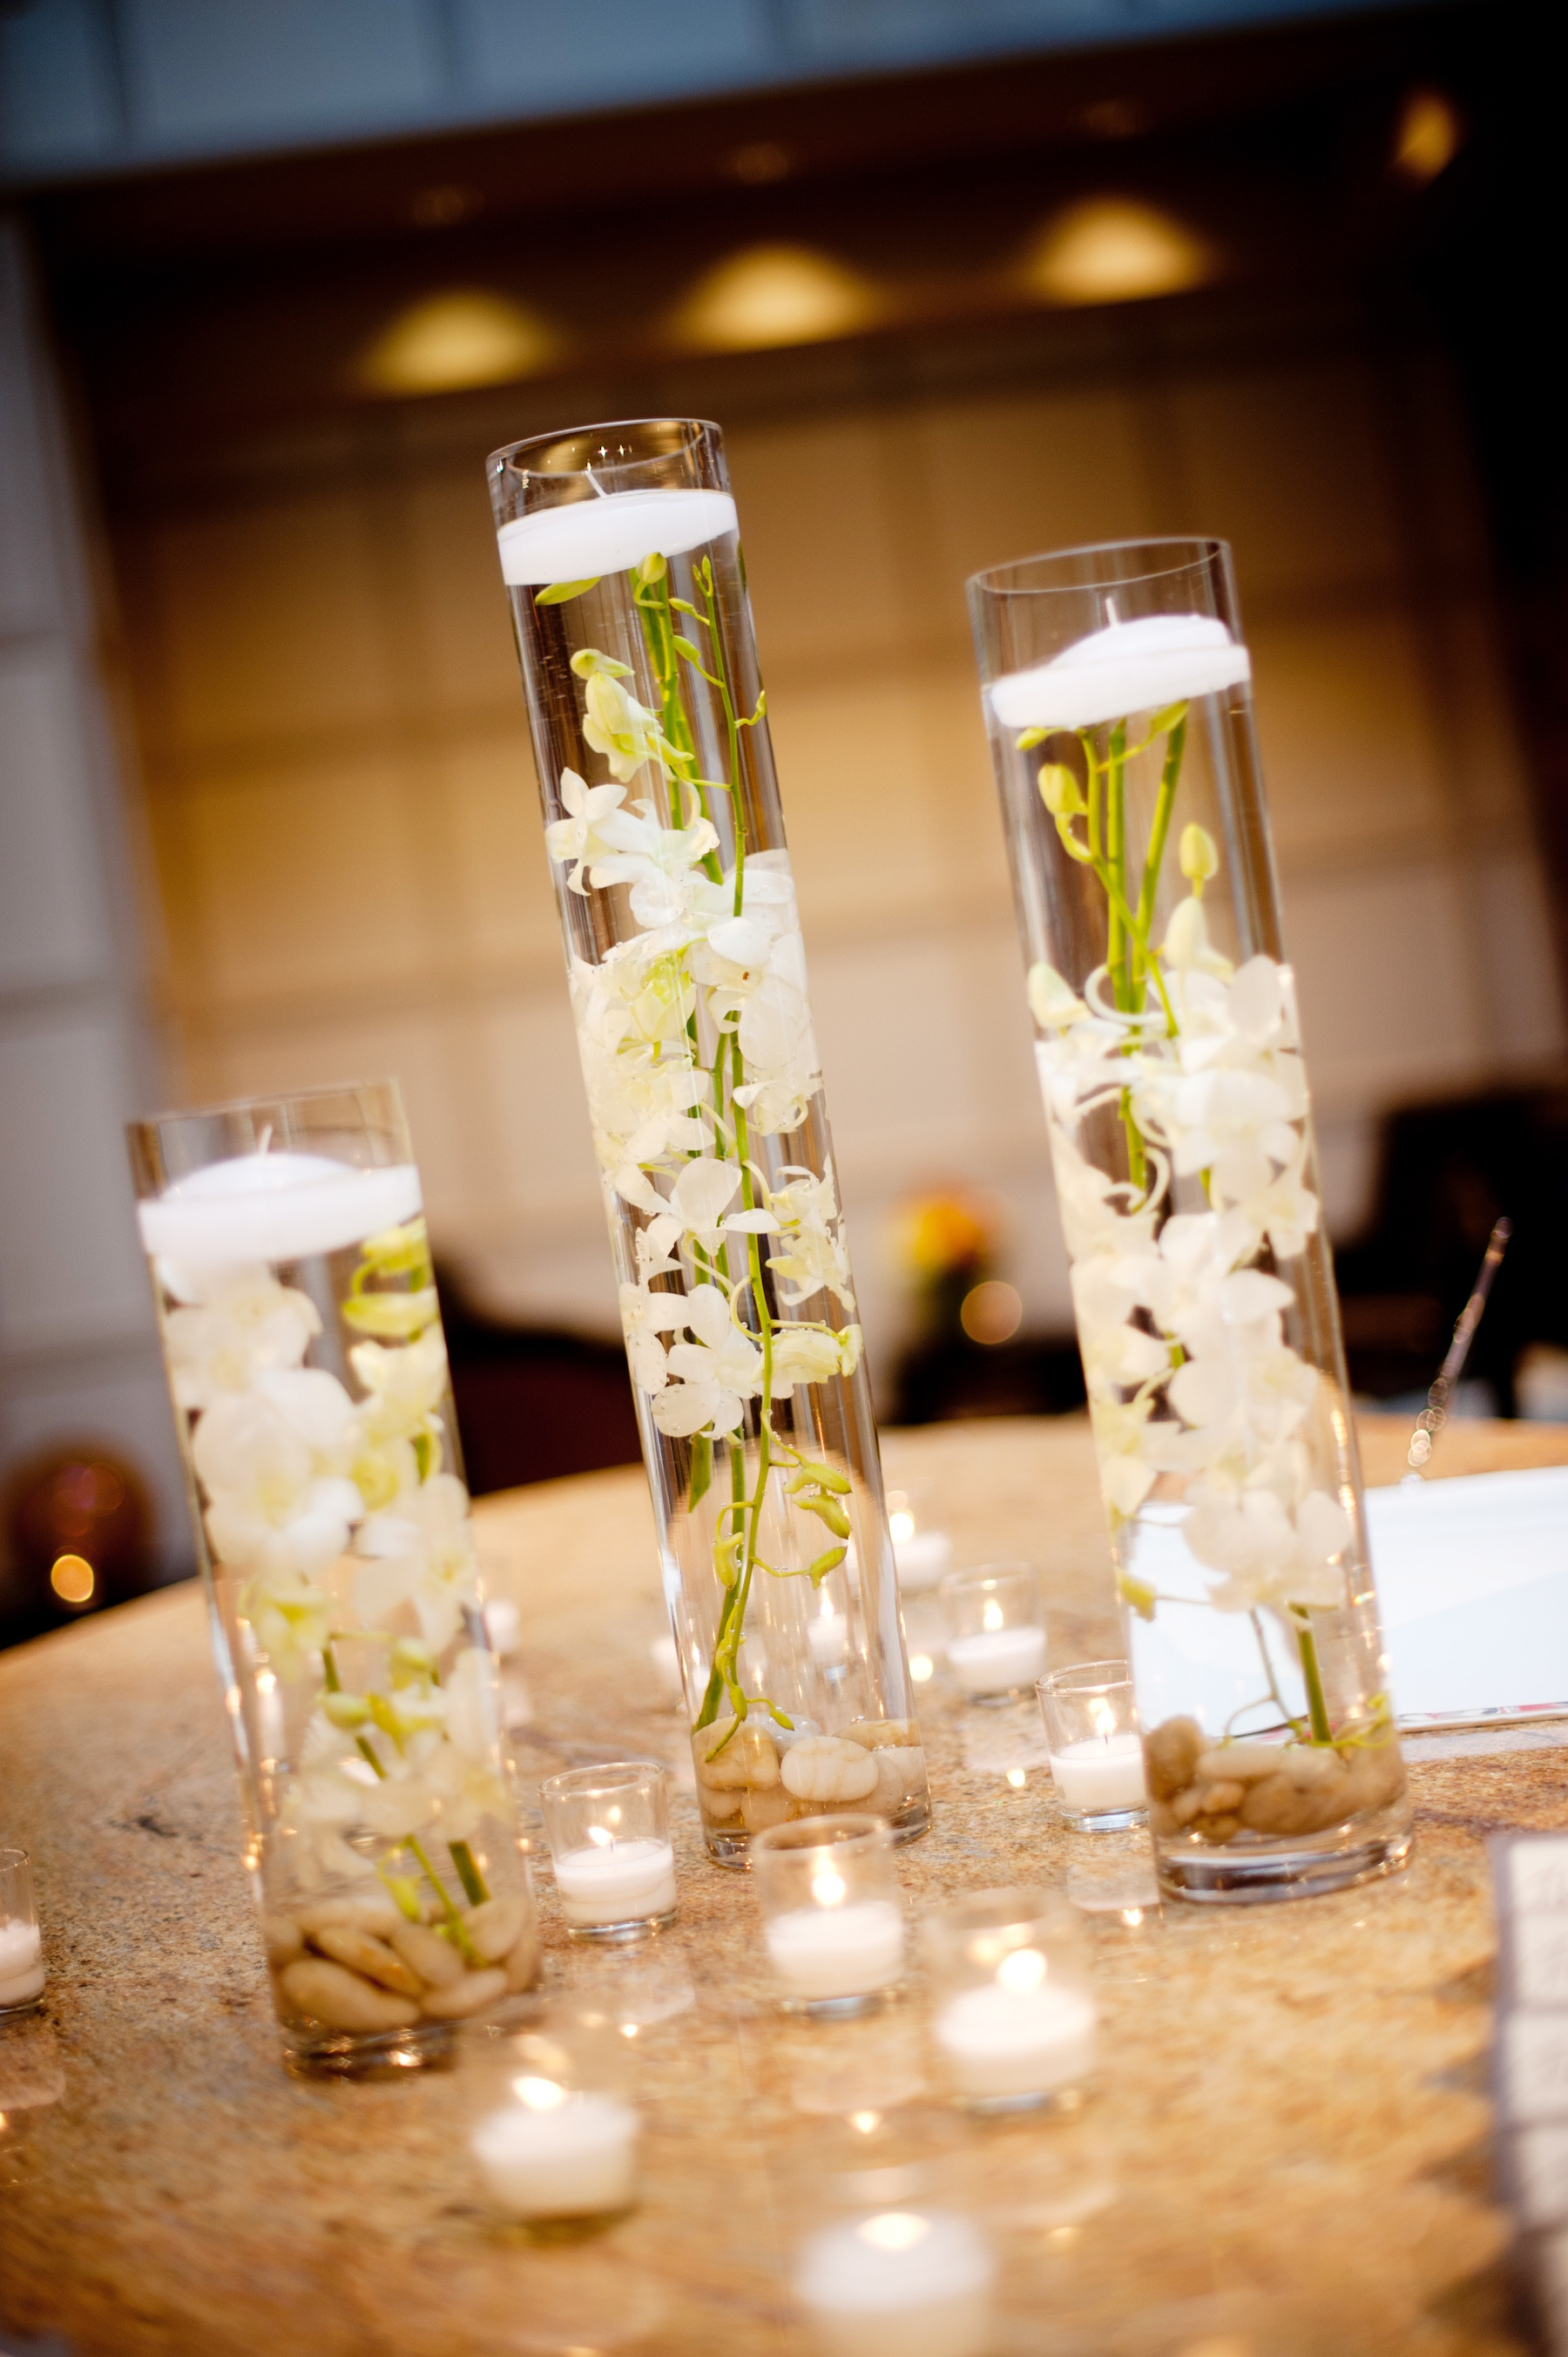 Stunning Diy Hurricane Vase Wedding Table Centerpiece